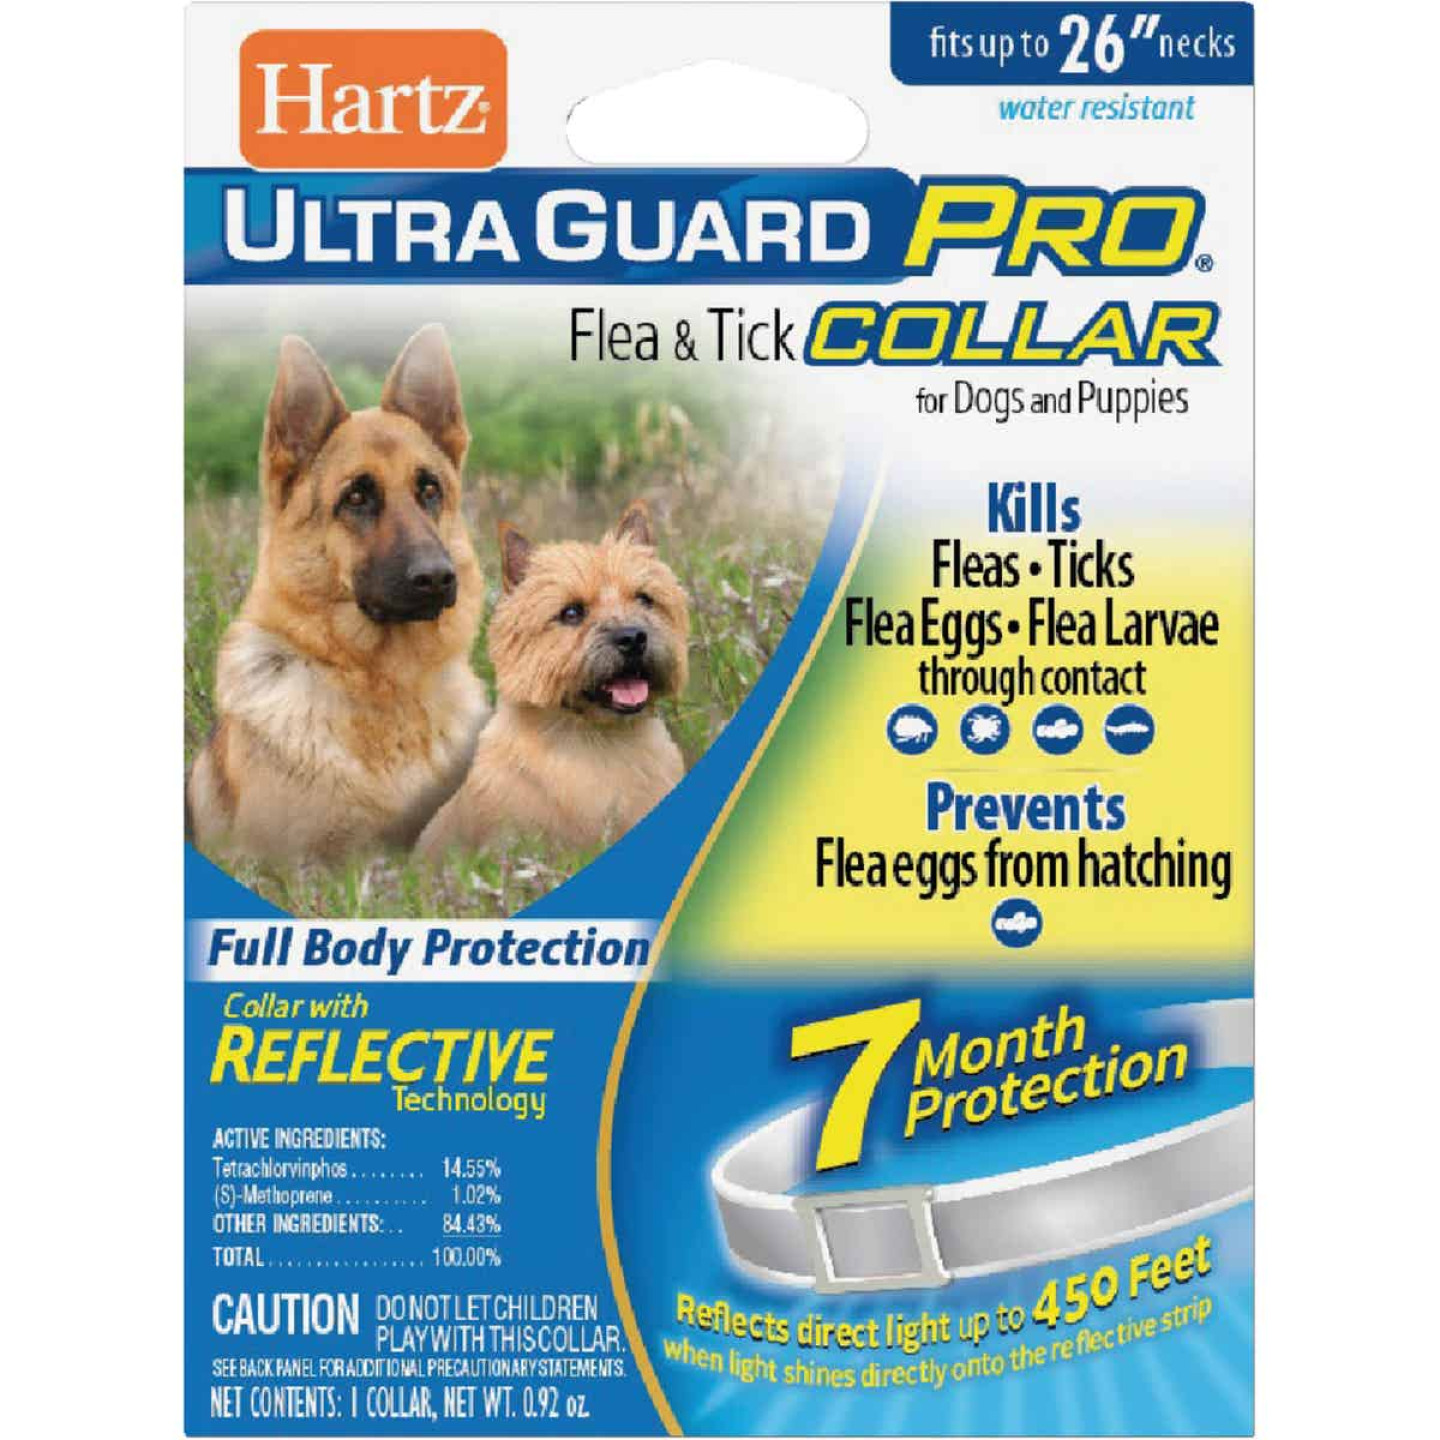 Hartz UltraGuard Pro Flea & Tick Water Resistant Reflective Collar For Dogs & Puppies Image 1